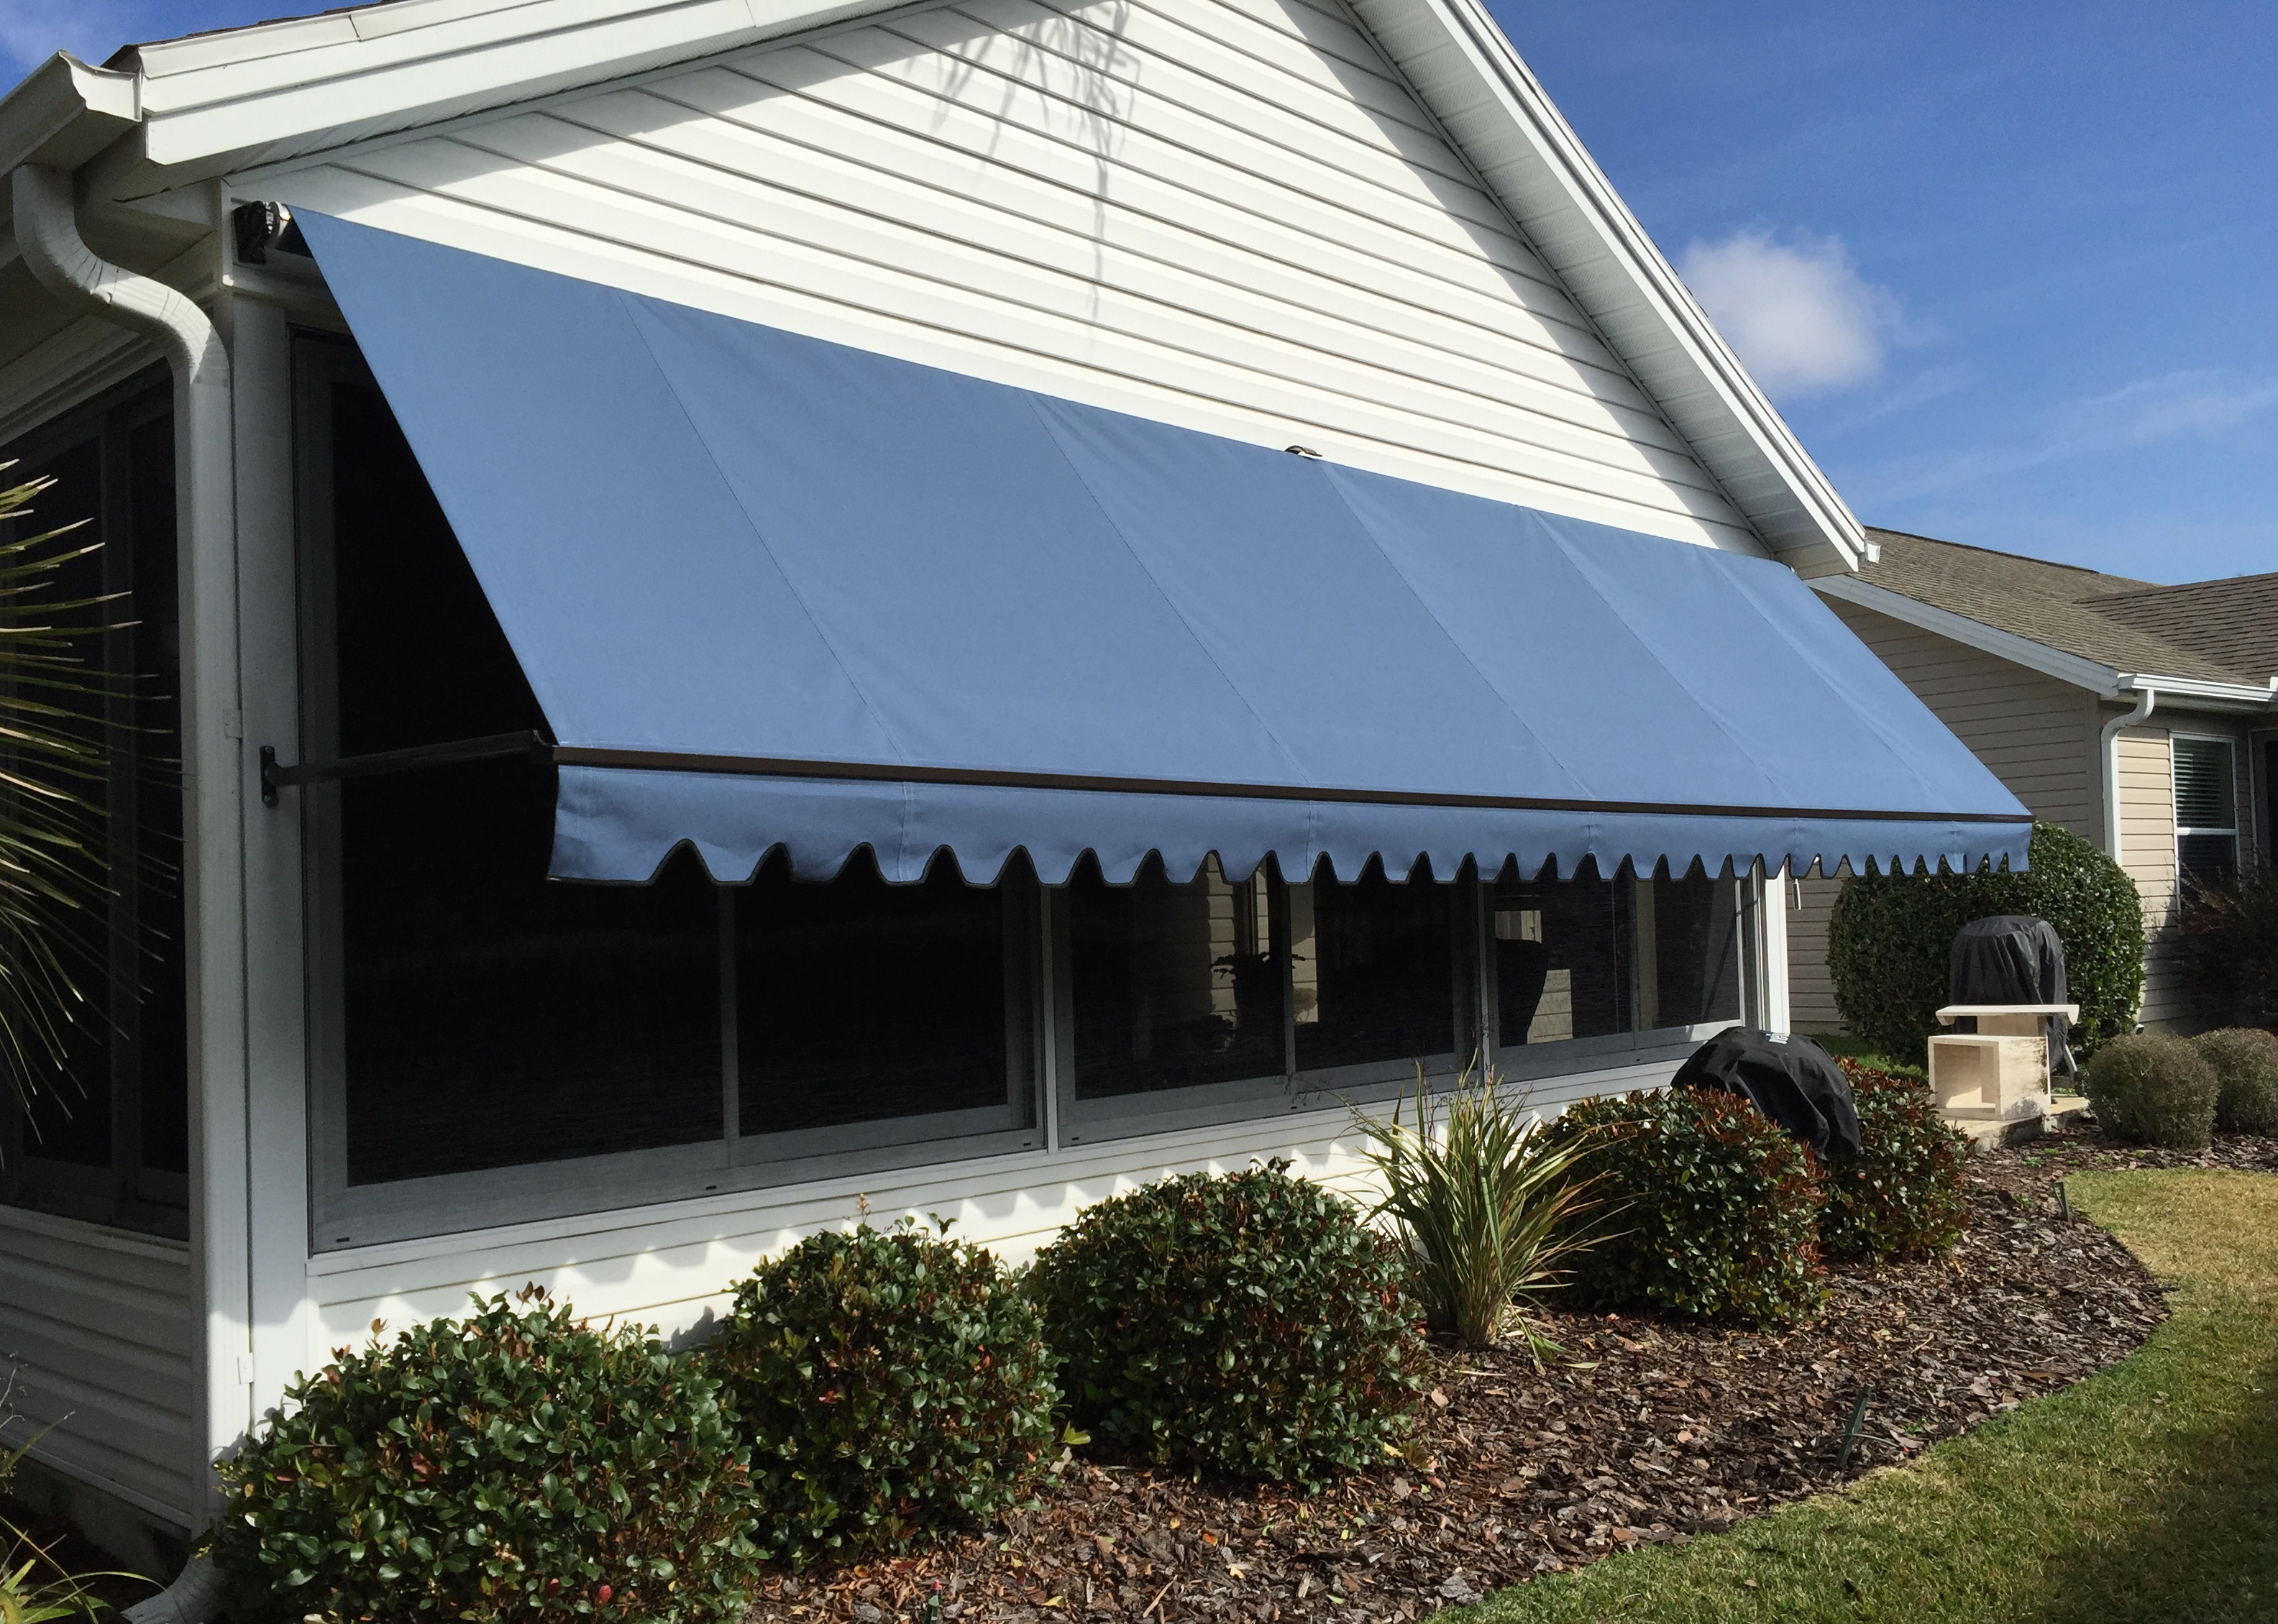 Sunesta Sundrop Awning Is Used To Shade Windows Of The Home Can Be Lowered Cover Whole Window Or Brought Up Allow Light In